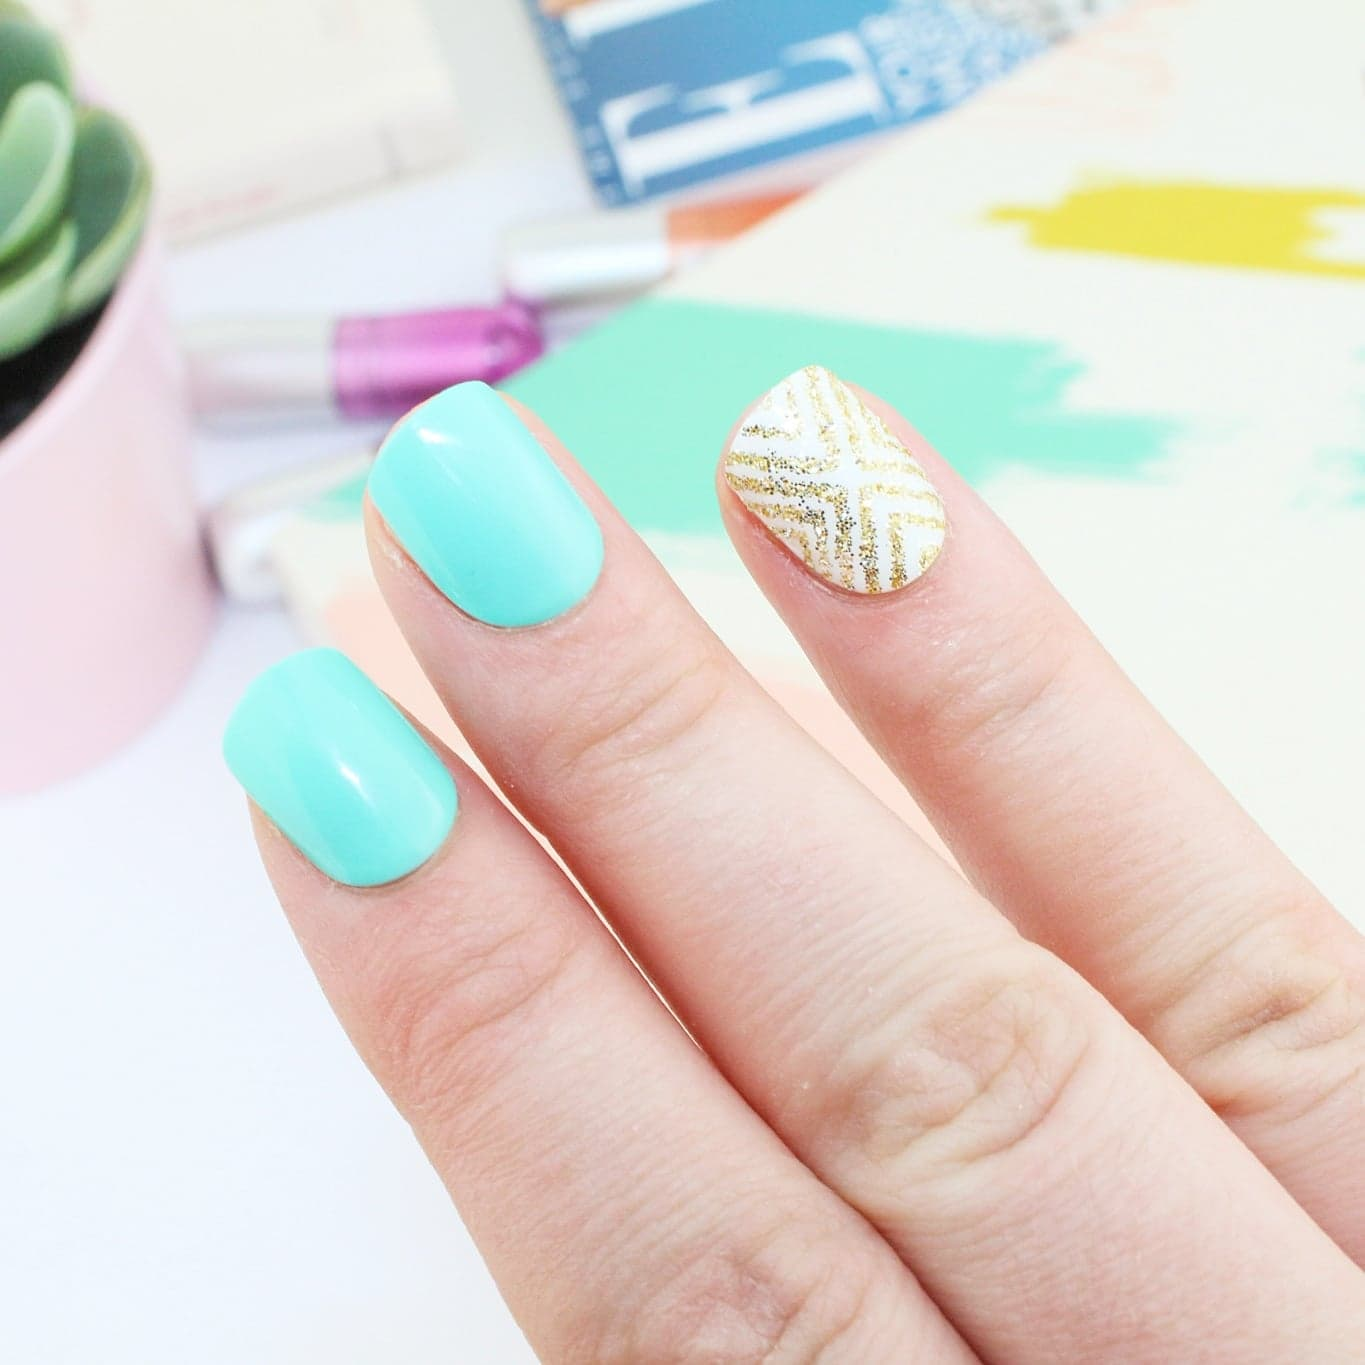 Instant Spring Nails in Minutes | Kiss imPRESS Press-on Manicure